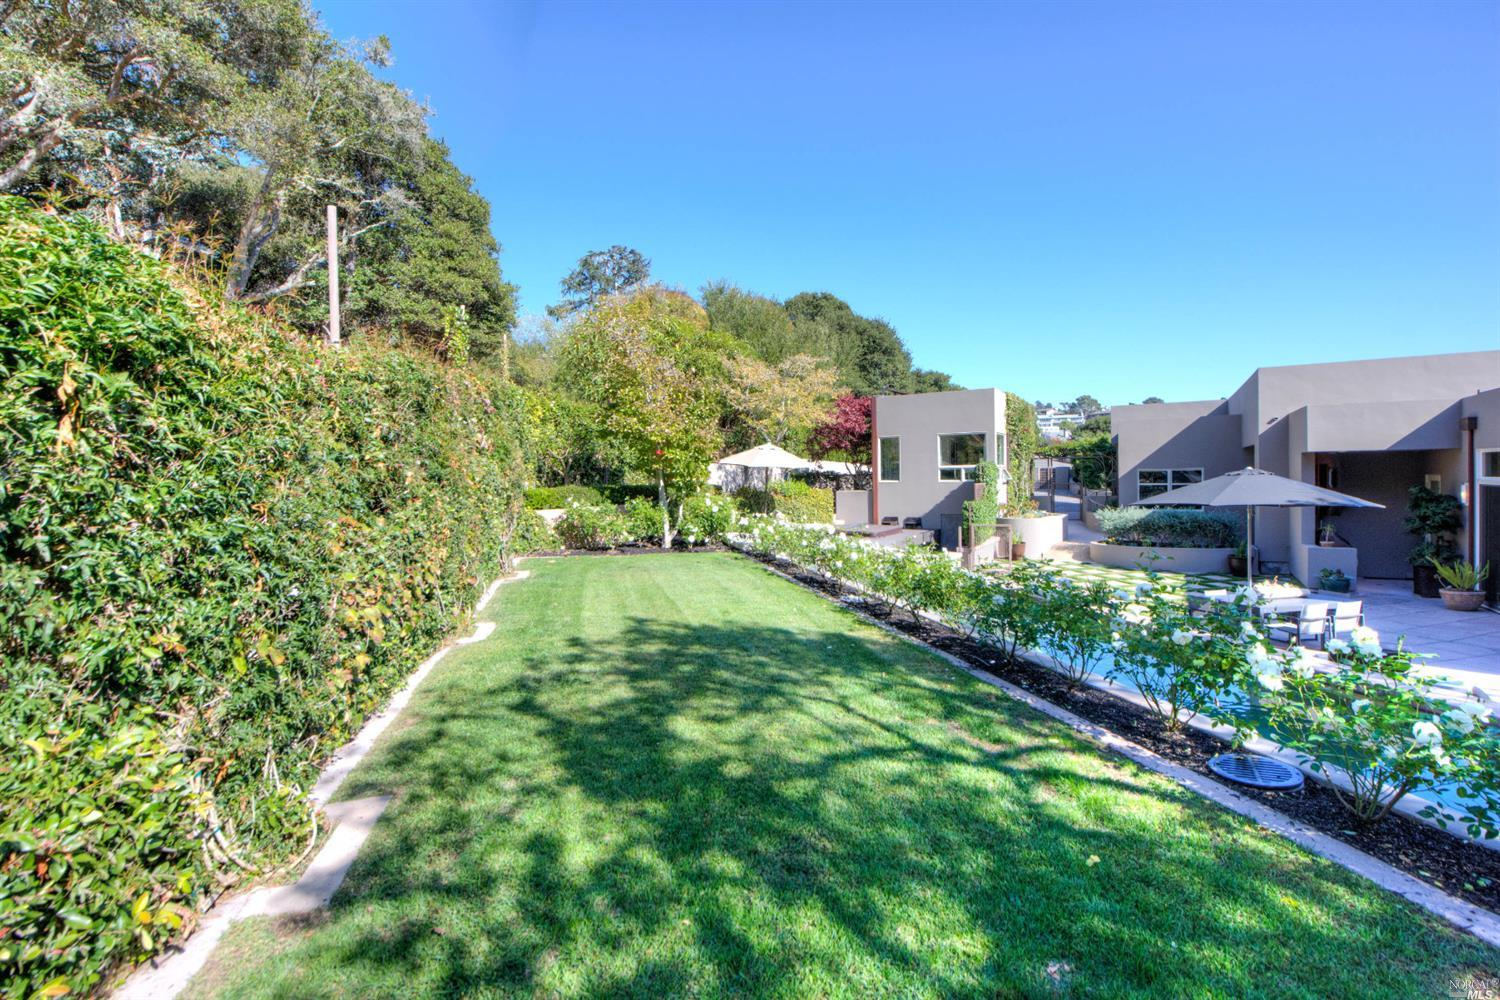 Additional photo for property listing at 83 Round Hill Road  TIBURON, CALIFORNIA 94920